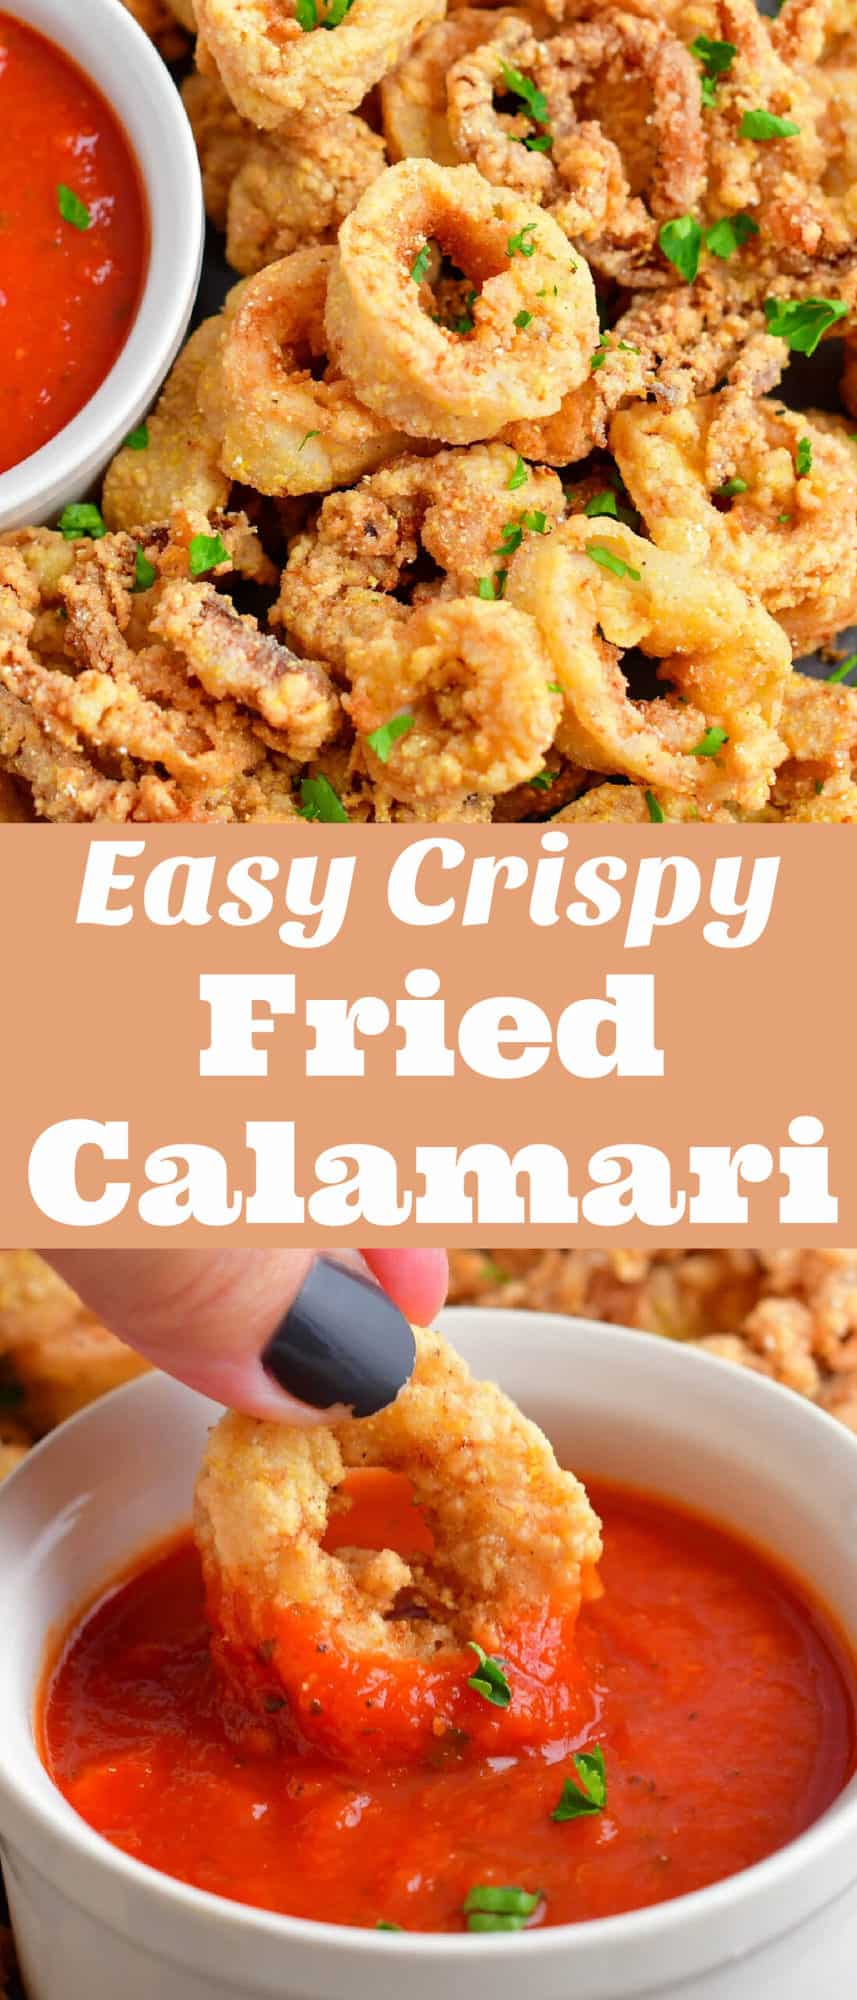 collage of two images of fried calamari and dipping into red sauce with title